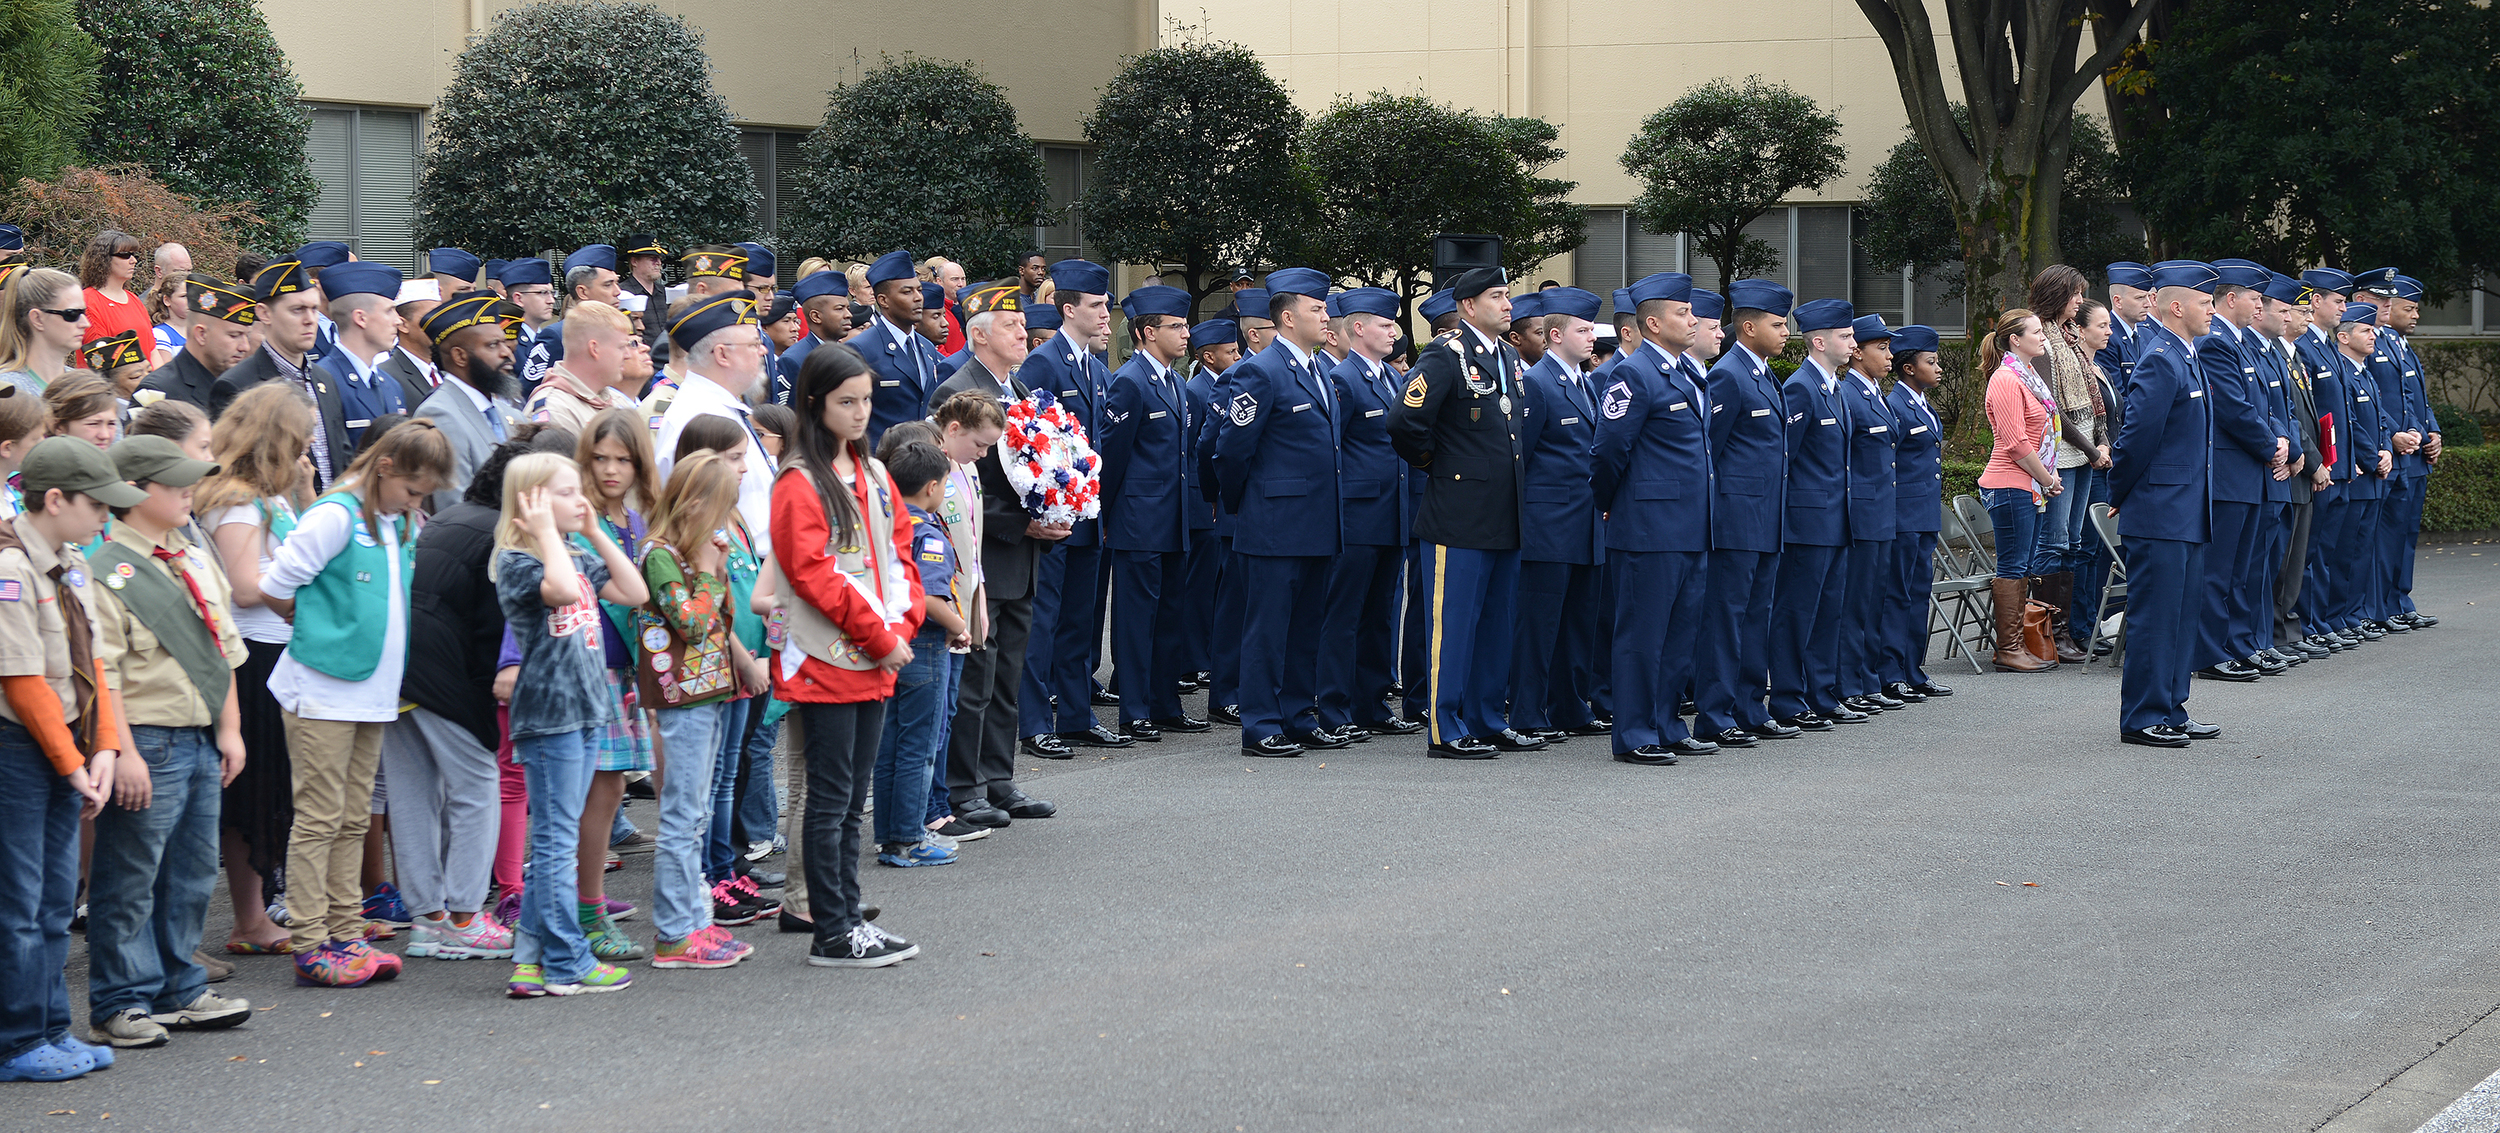 Members of Team Yokota attend a Veterans Day ceremony at Yokota Air Base, Japan, Nov. 11, 2015. Veterans Day celebrates the service of all U.S. military veterans and coincides with Armistice Day and Remembrance Day which are celebrated in other countries, marking the anniversary of the end of World War I. (U.S. Air Force photo by Senior Airman David C. Danford/Released)